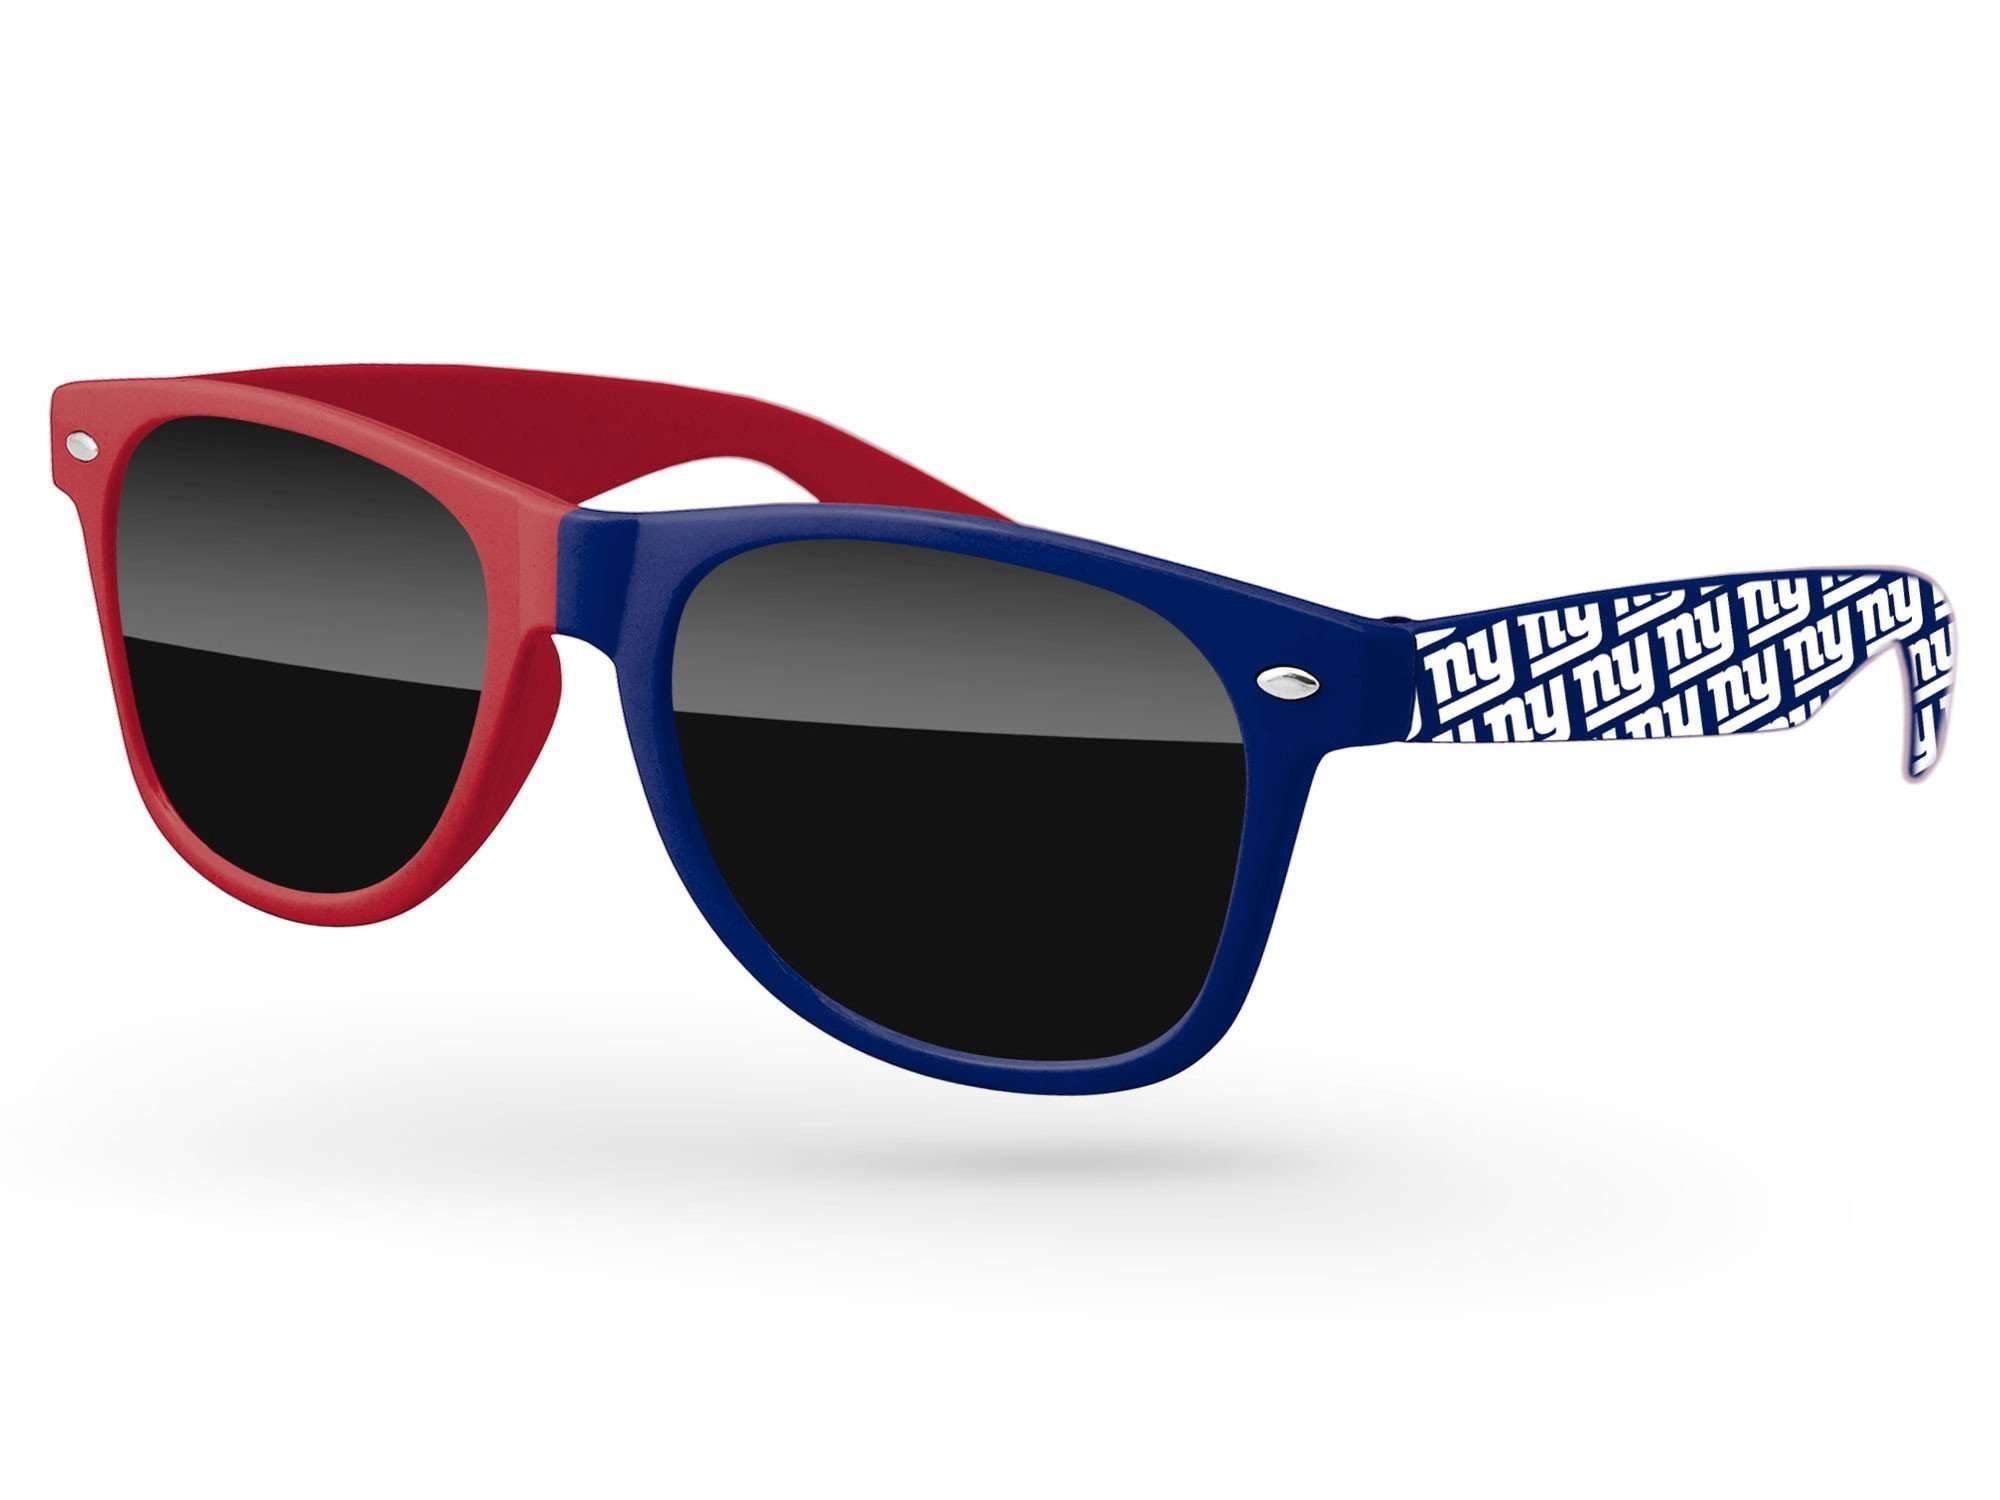 RD035 - Split-tone Retro Promotional Sunglasses w/ 1-color extended arms imprint